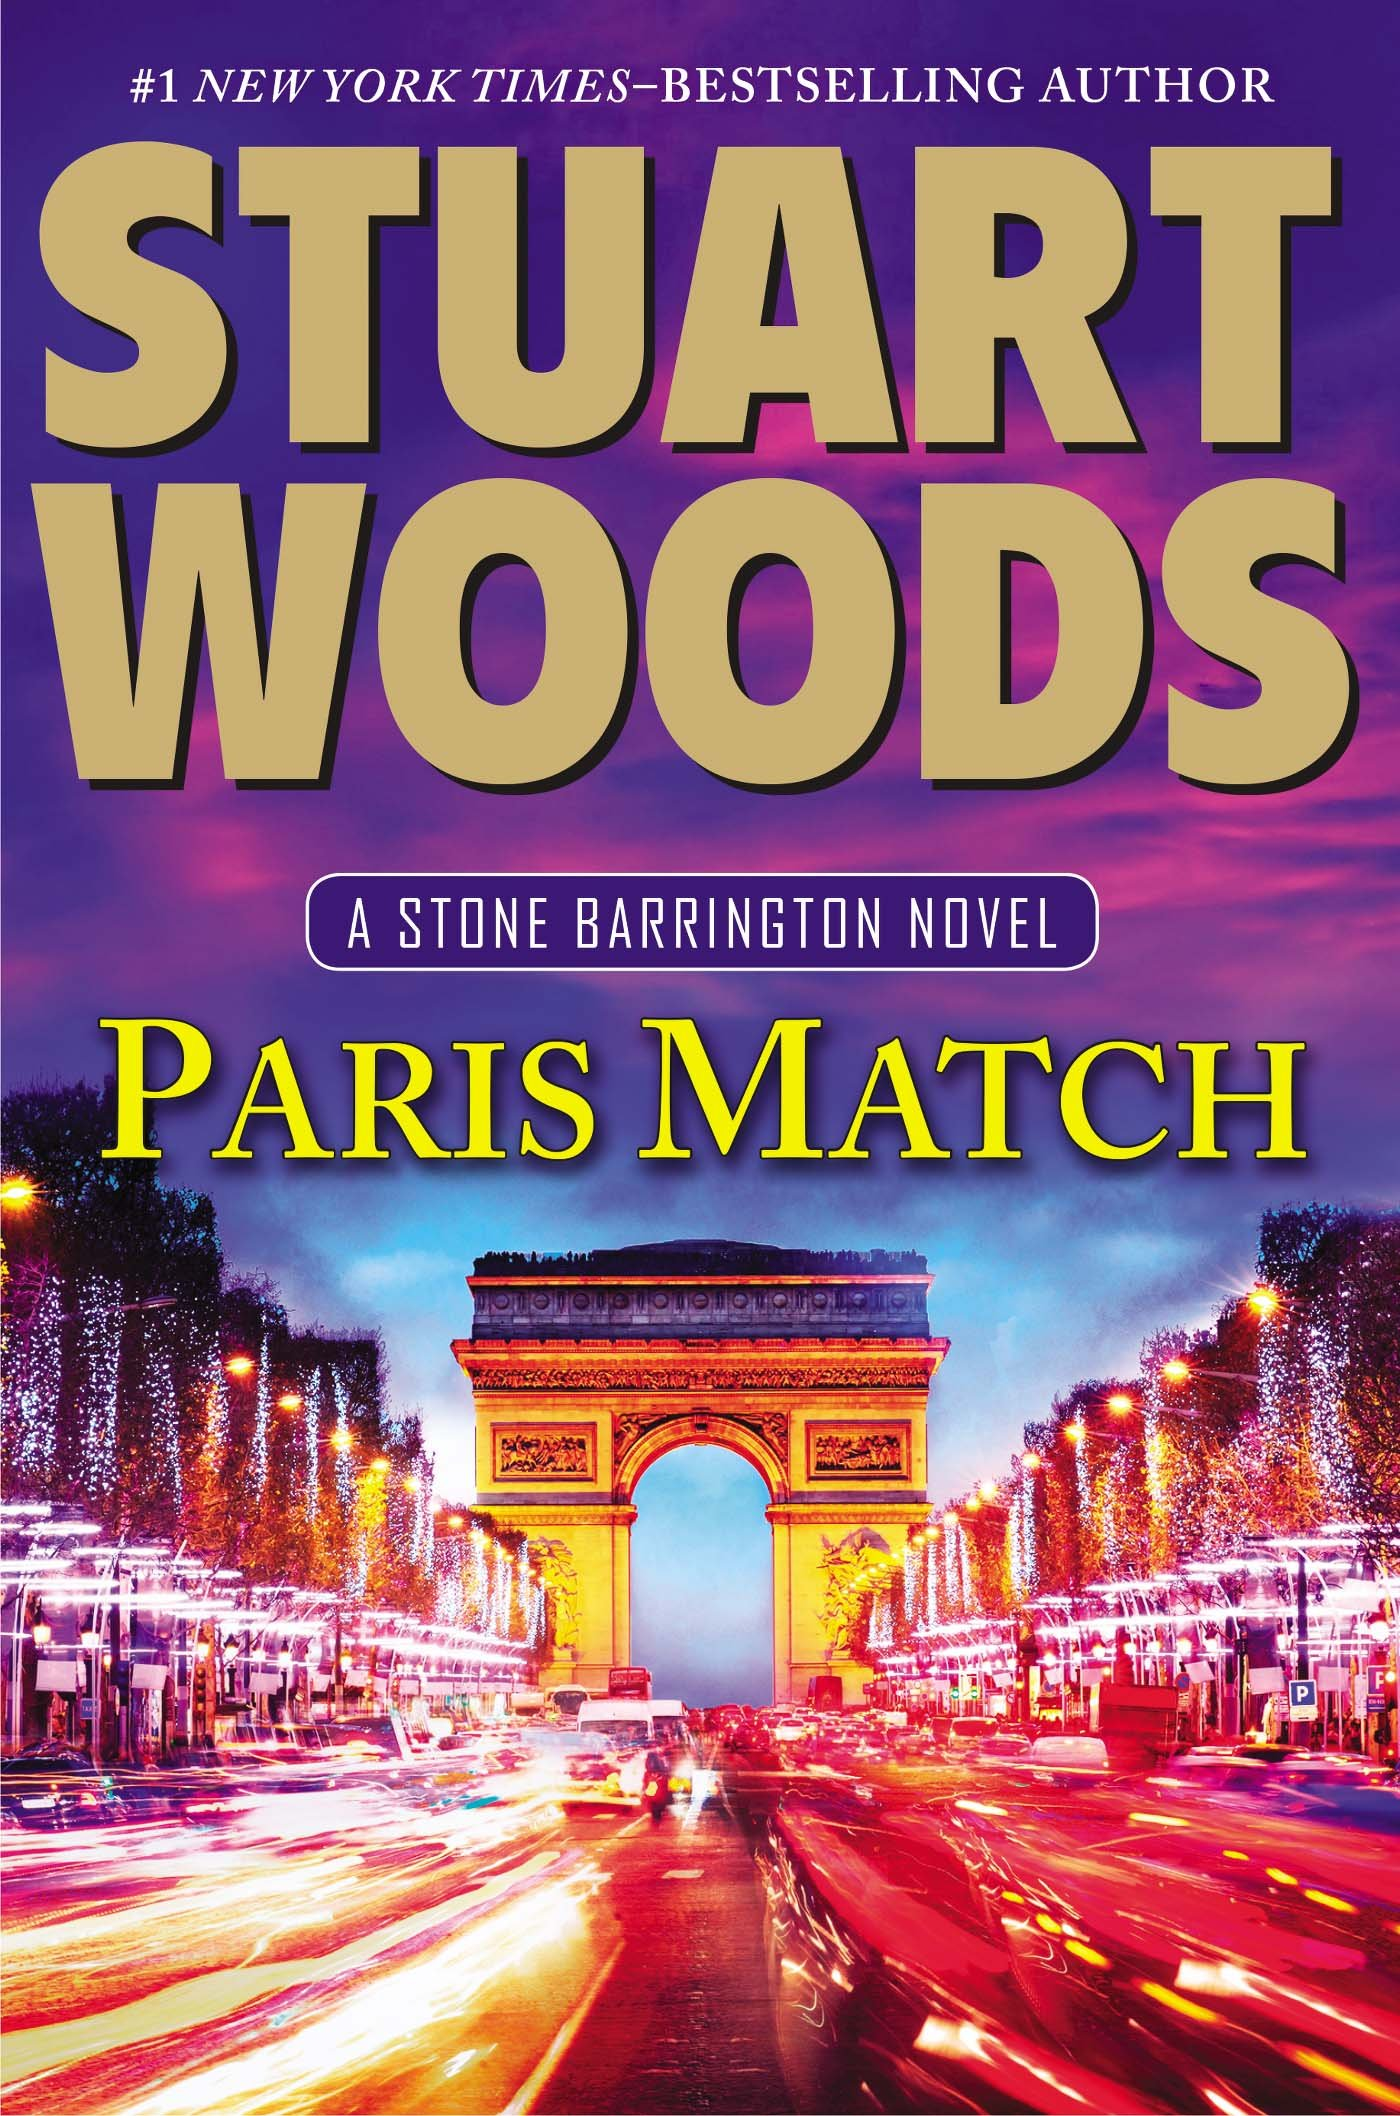 Image result for Paris Match by Stuart Woods